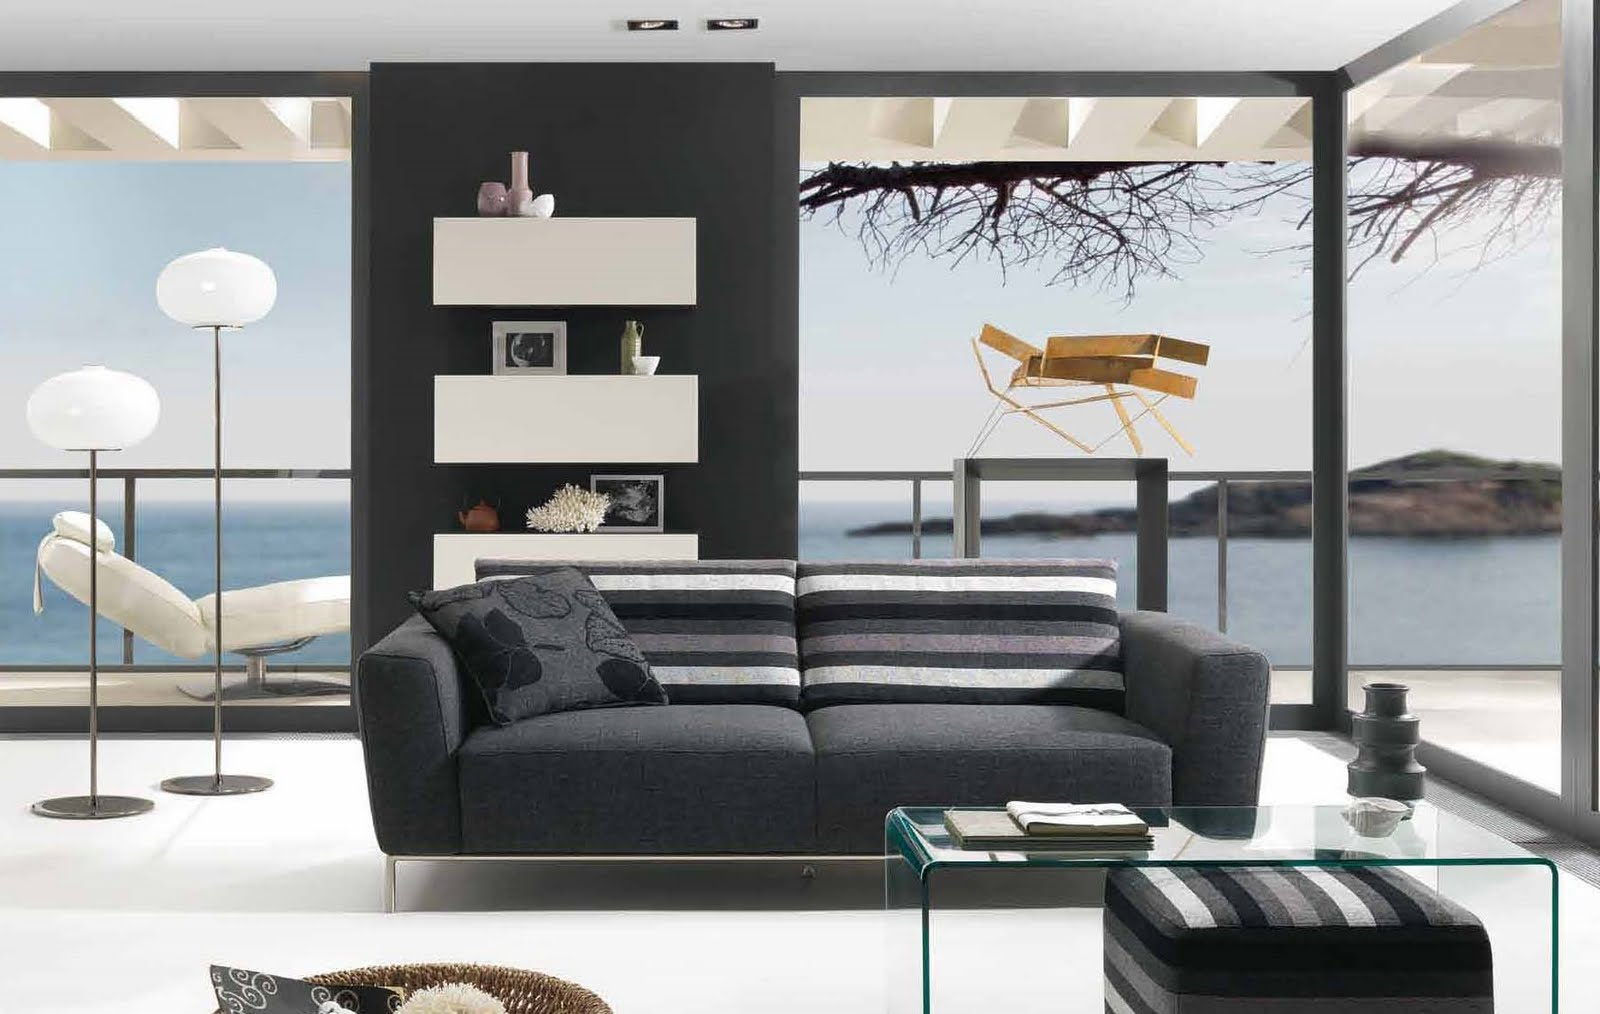 Future house design modern living room interior design styles 2010 by natuzzi for Contemporary furniture ideas living room